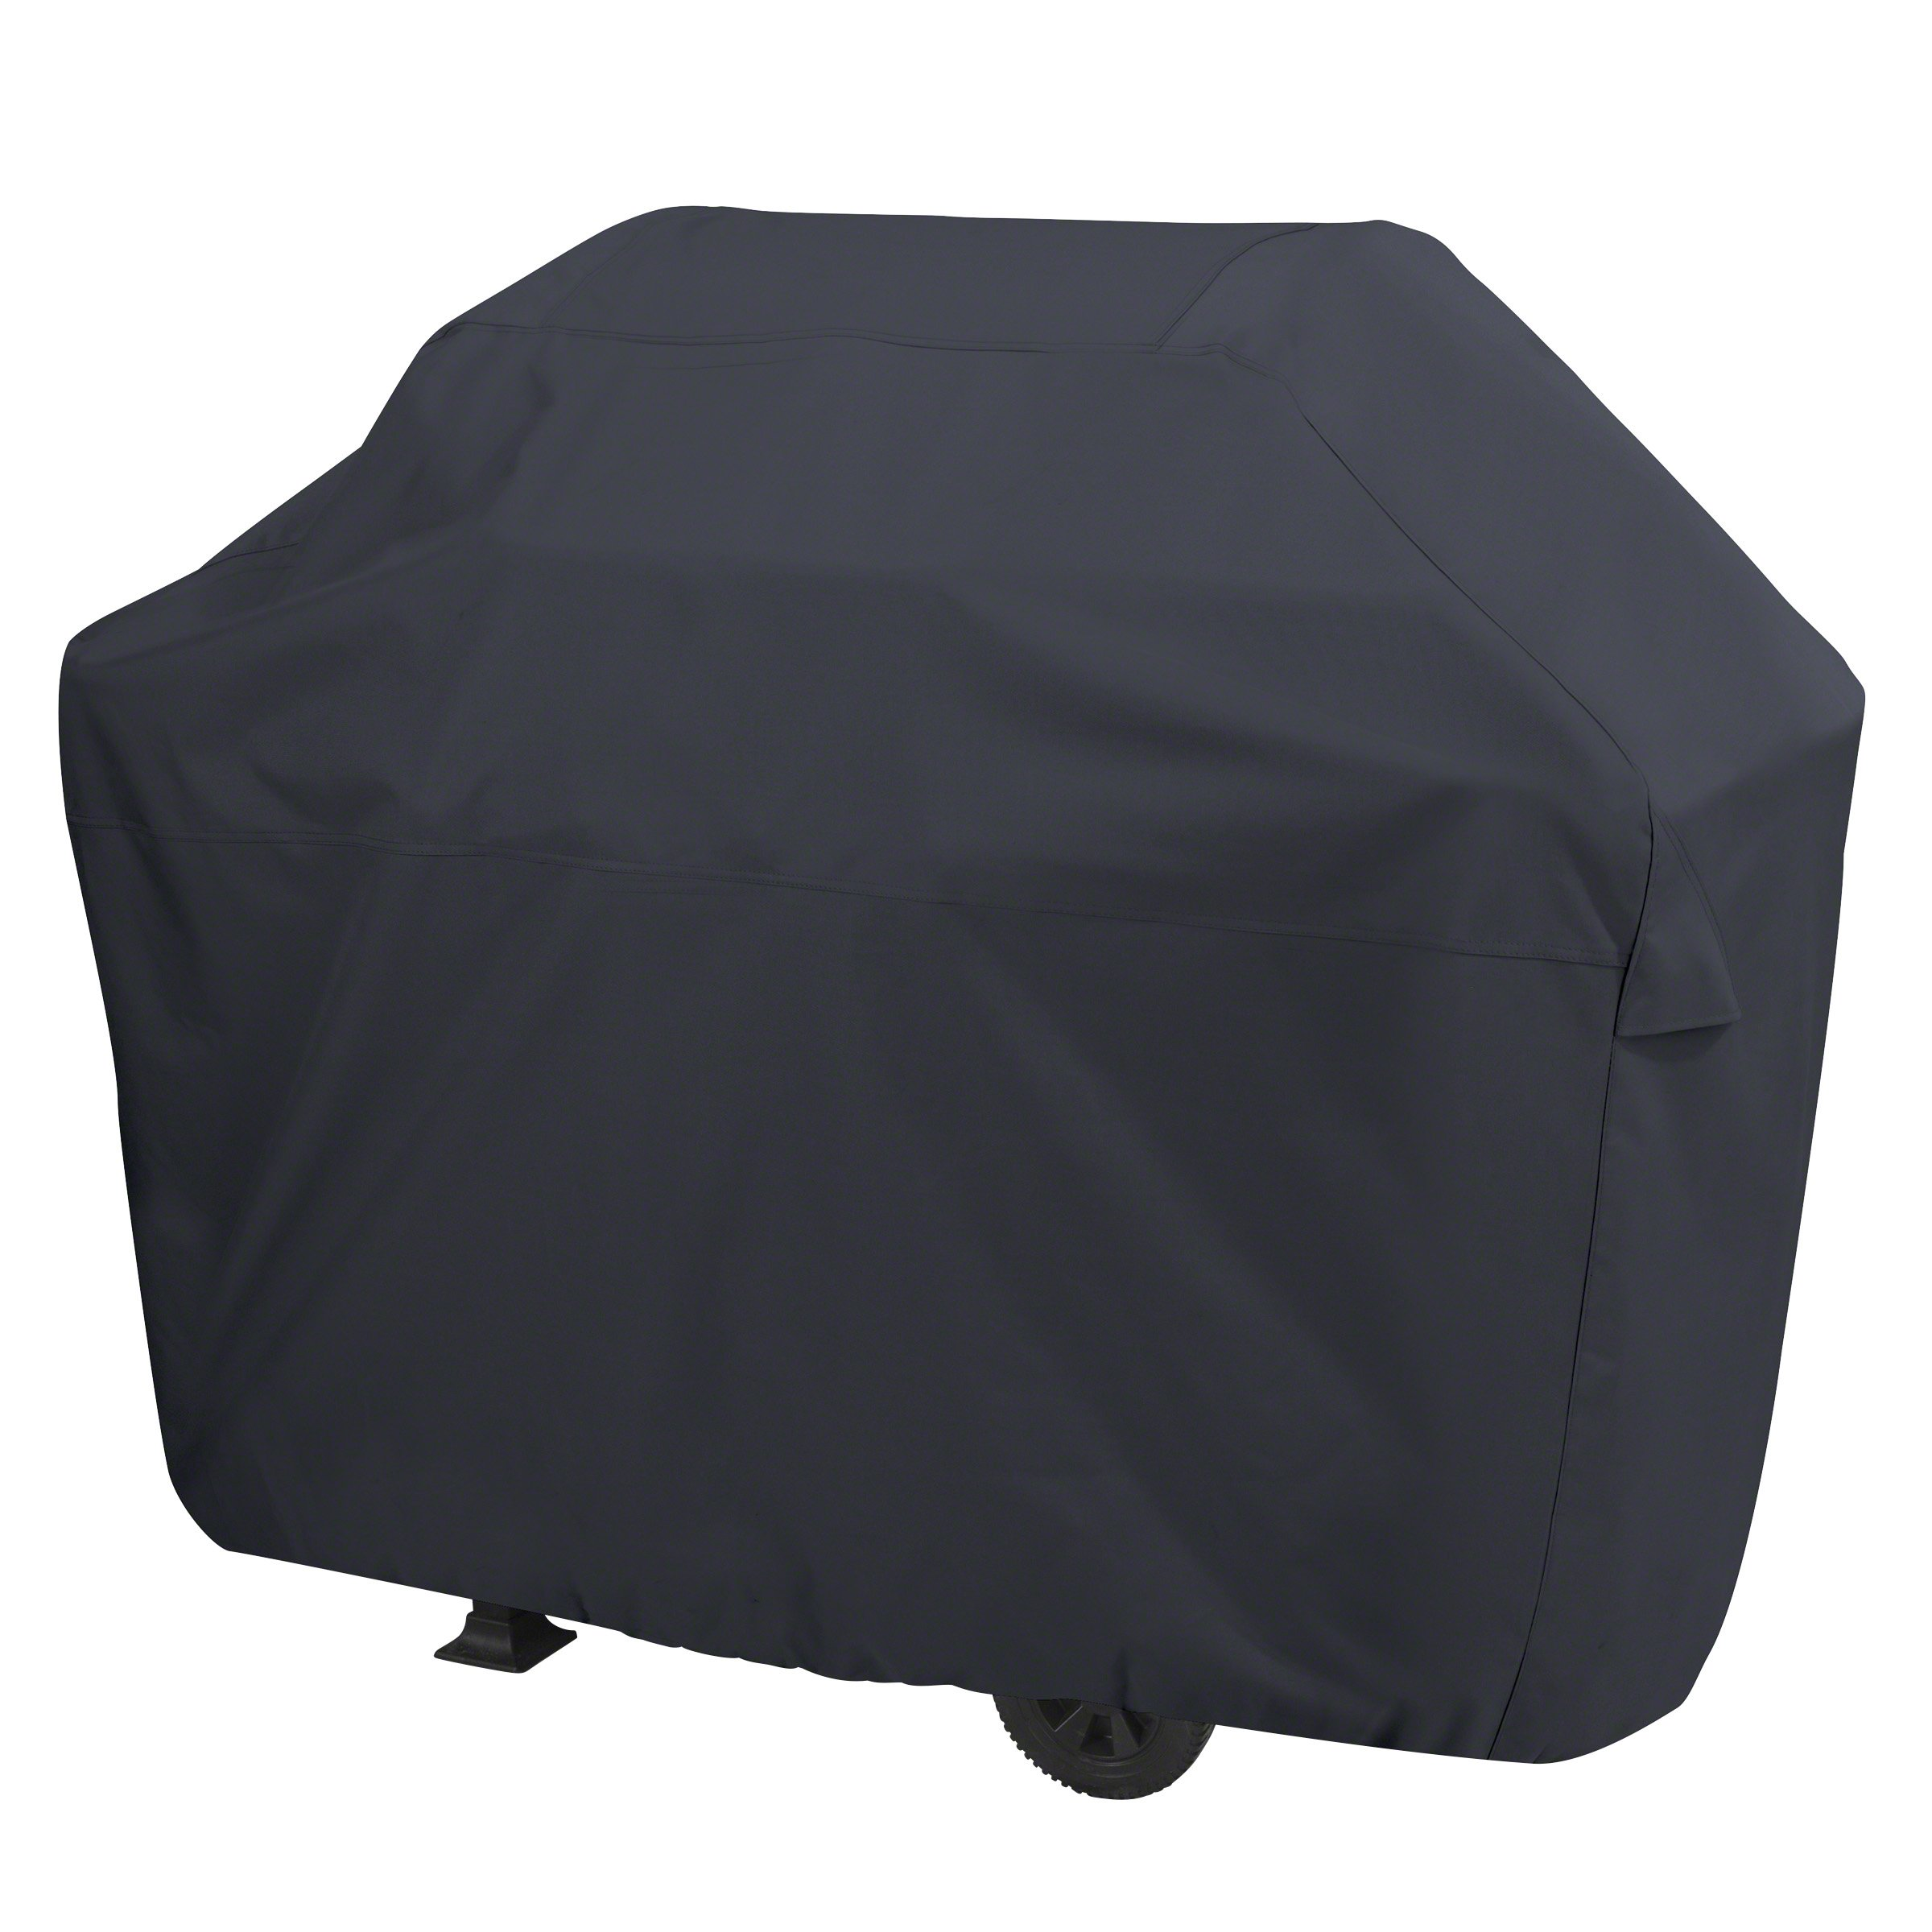 AmazonBasics Gas Grill Cover - X-Large, Black